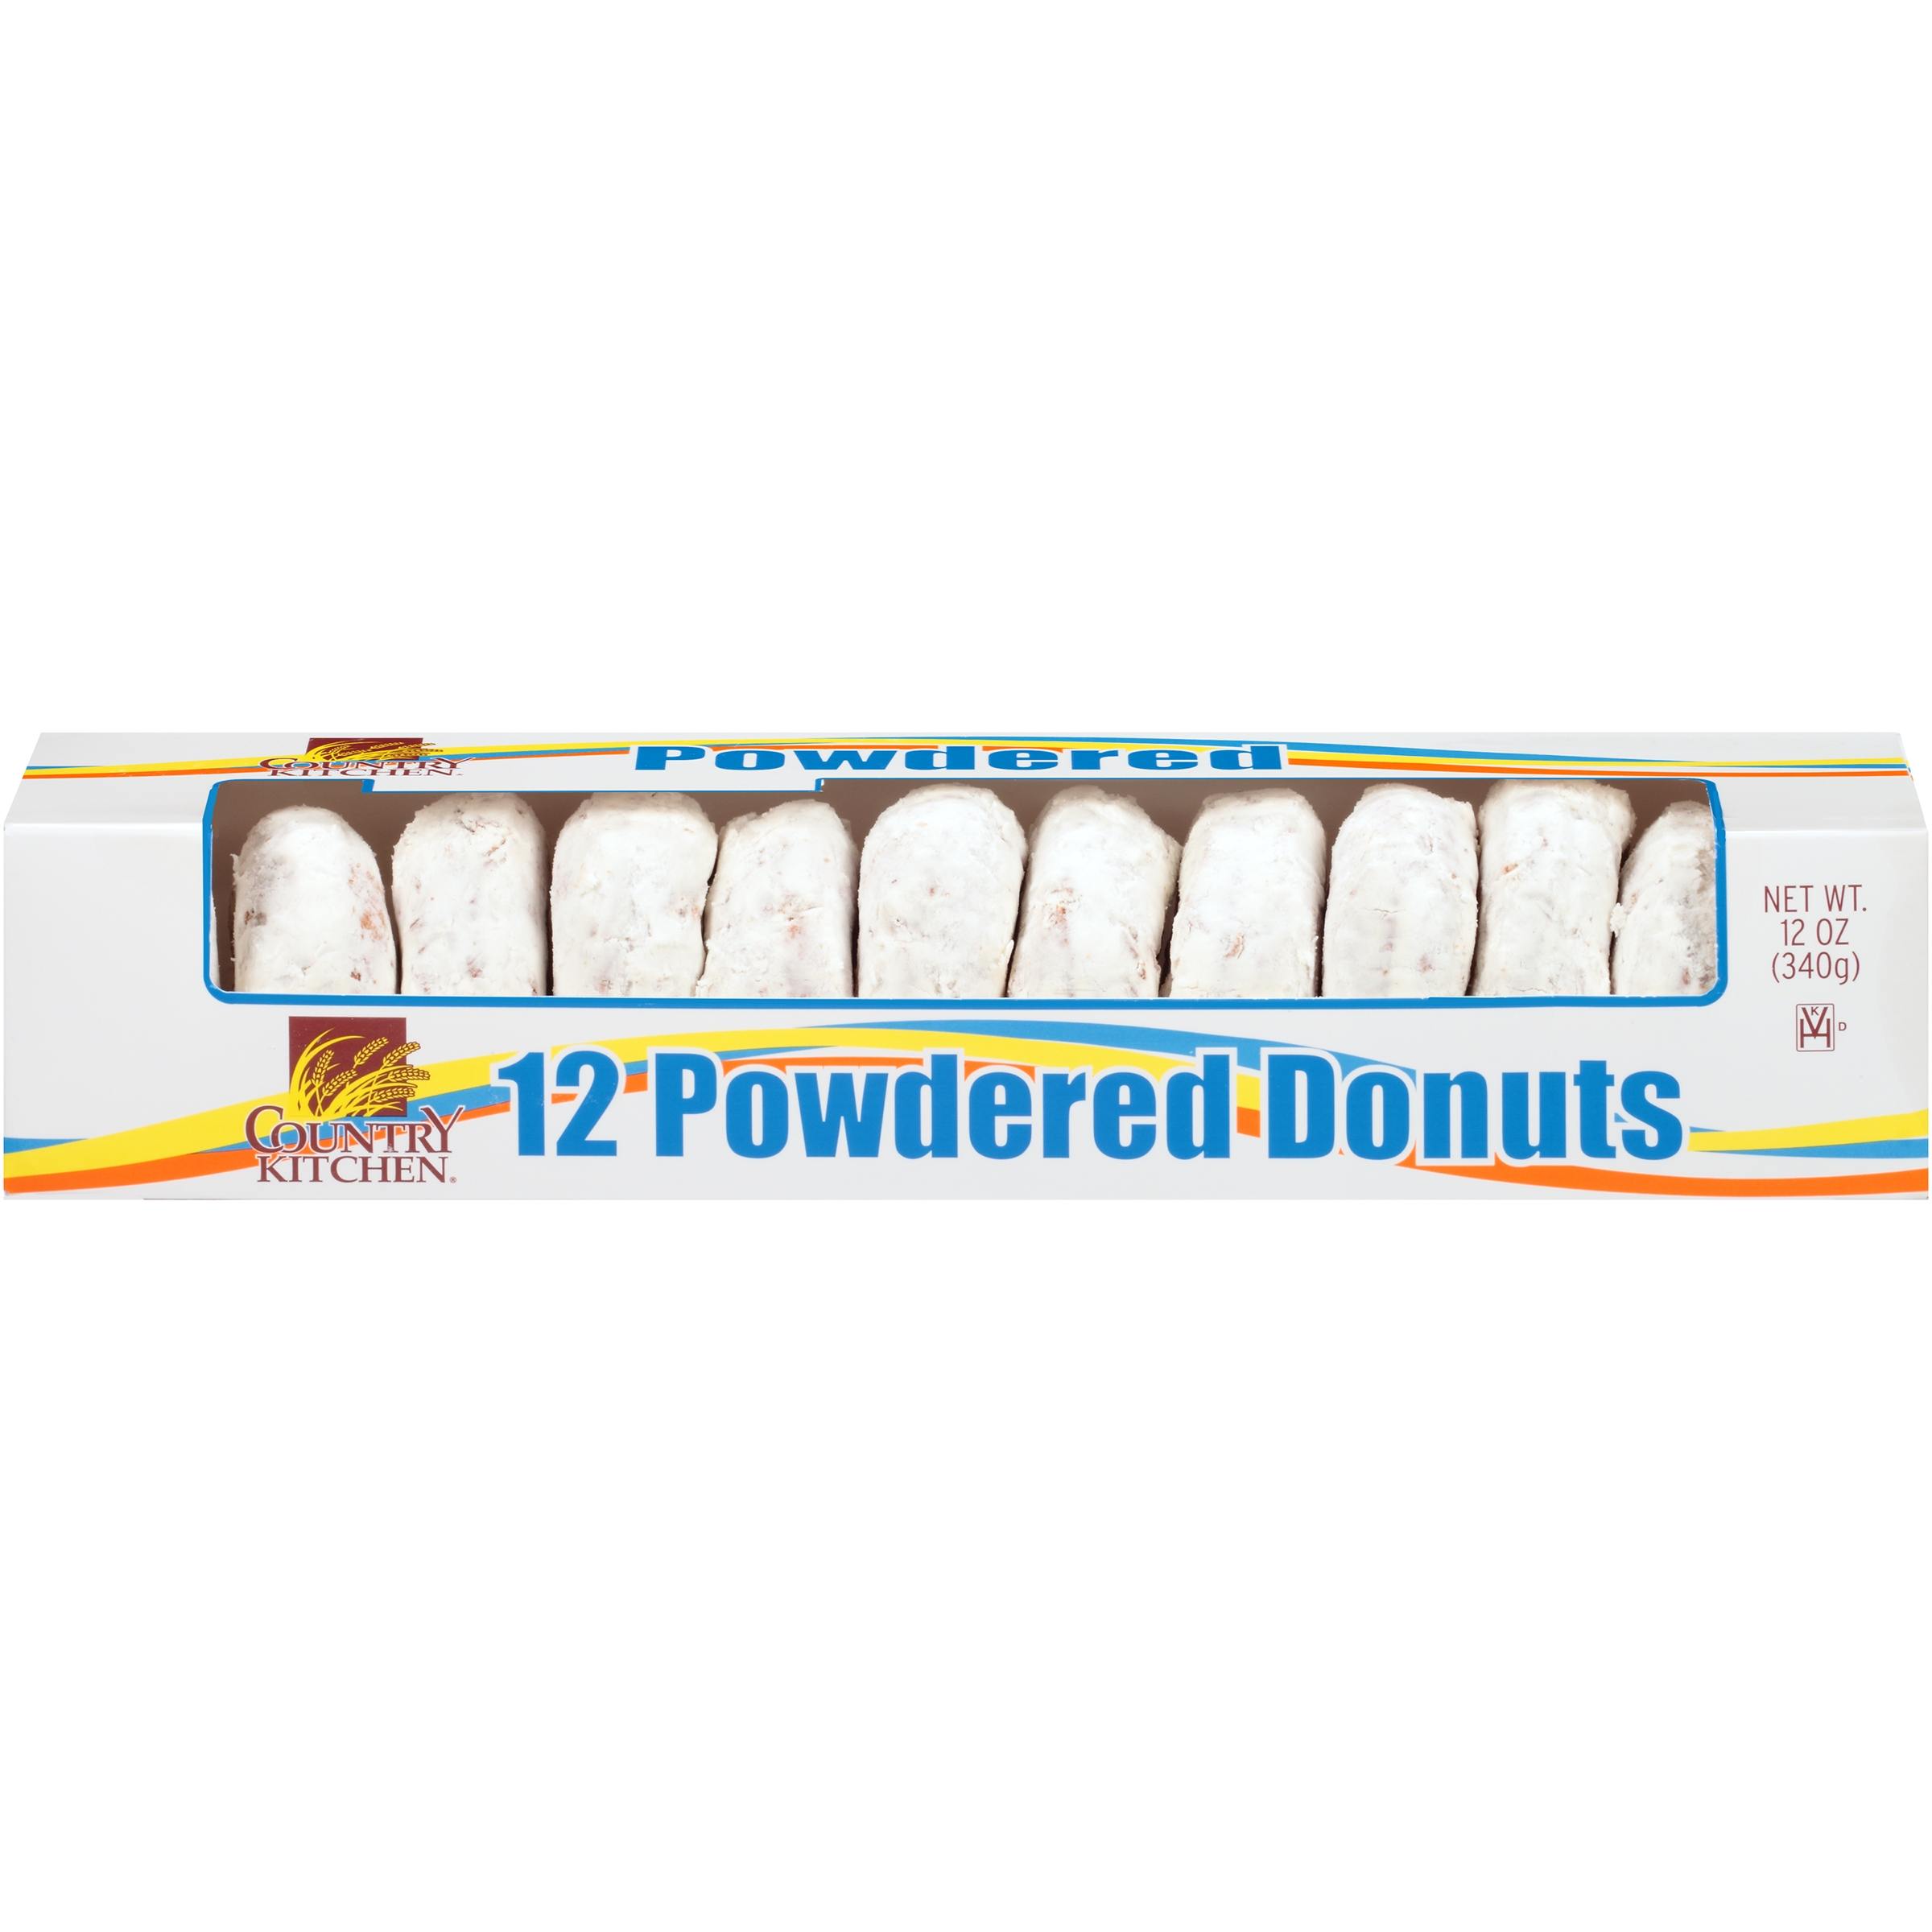 hight resolution of country kitchen powdered donuts 12 ct box walmart com pa wiring diagram donut ct wiring diagram